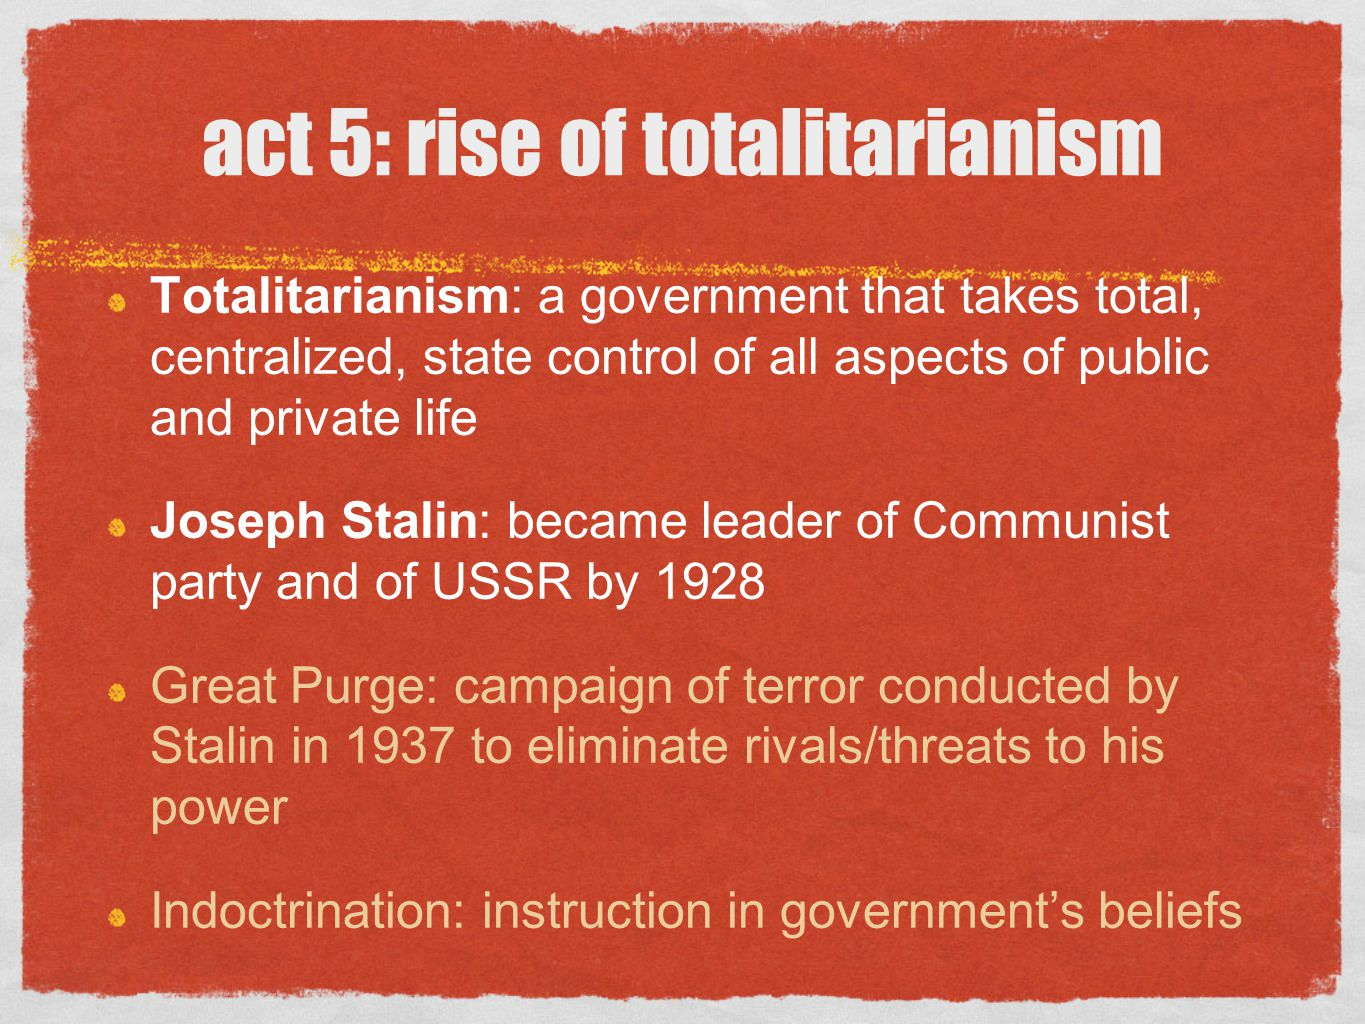 act 5: rise of totalitarianism